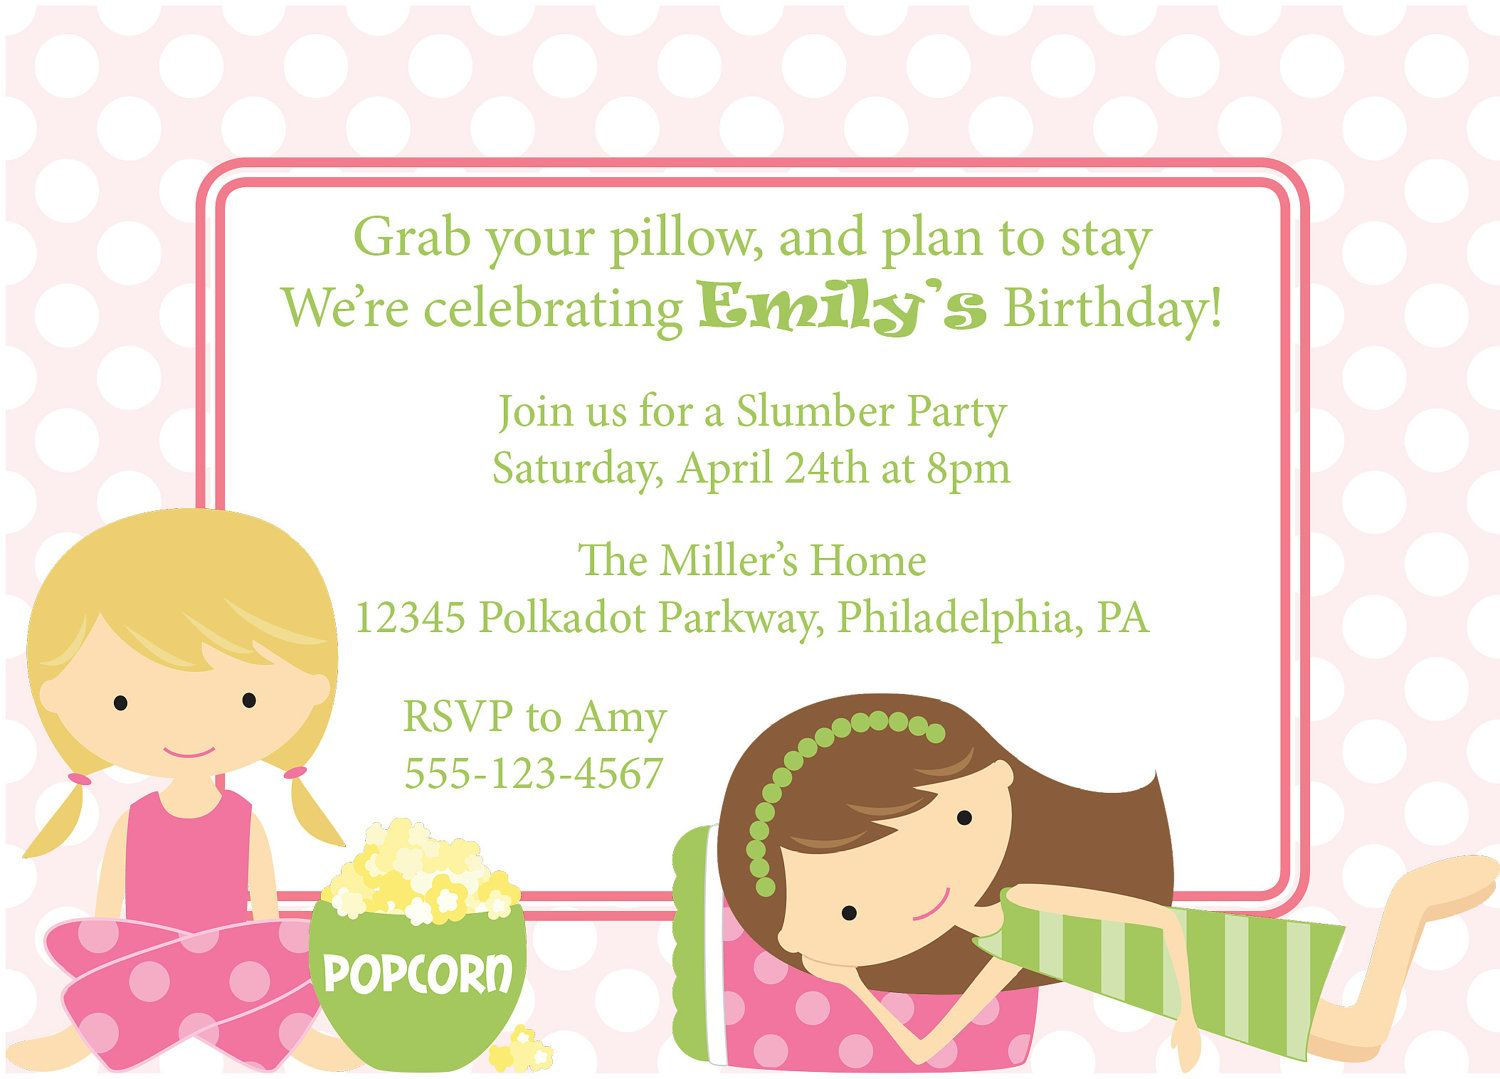 Slumber Party Invitation Sleepover Invite Birthday Party Girls – Sleepover Birthday Party Invitations